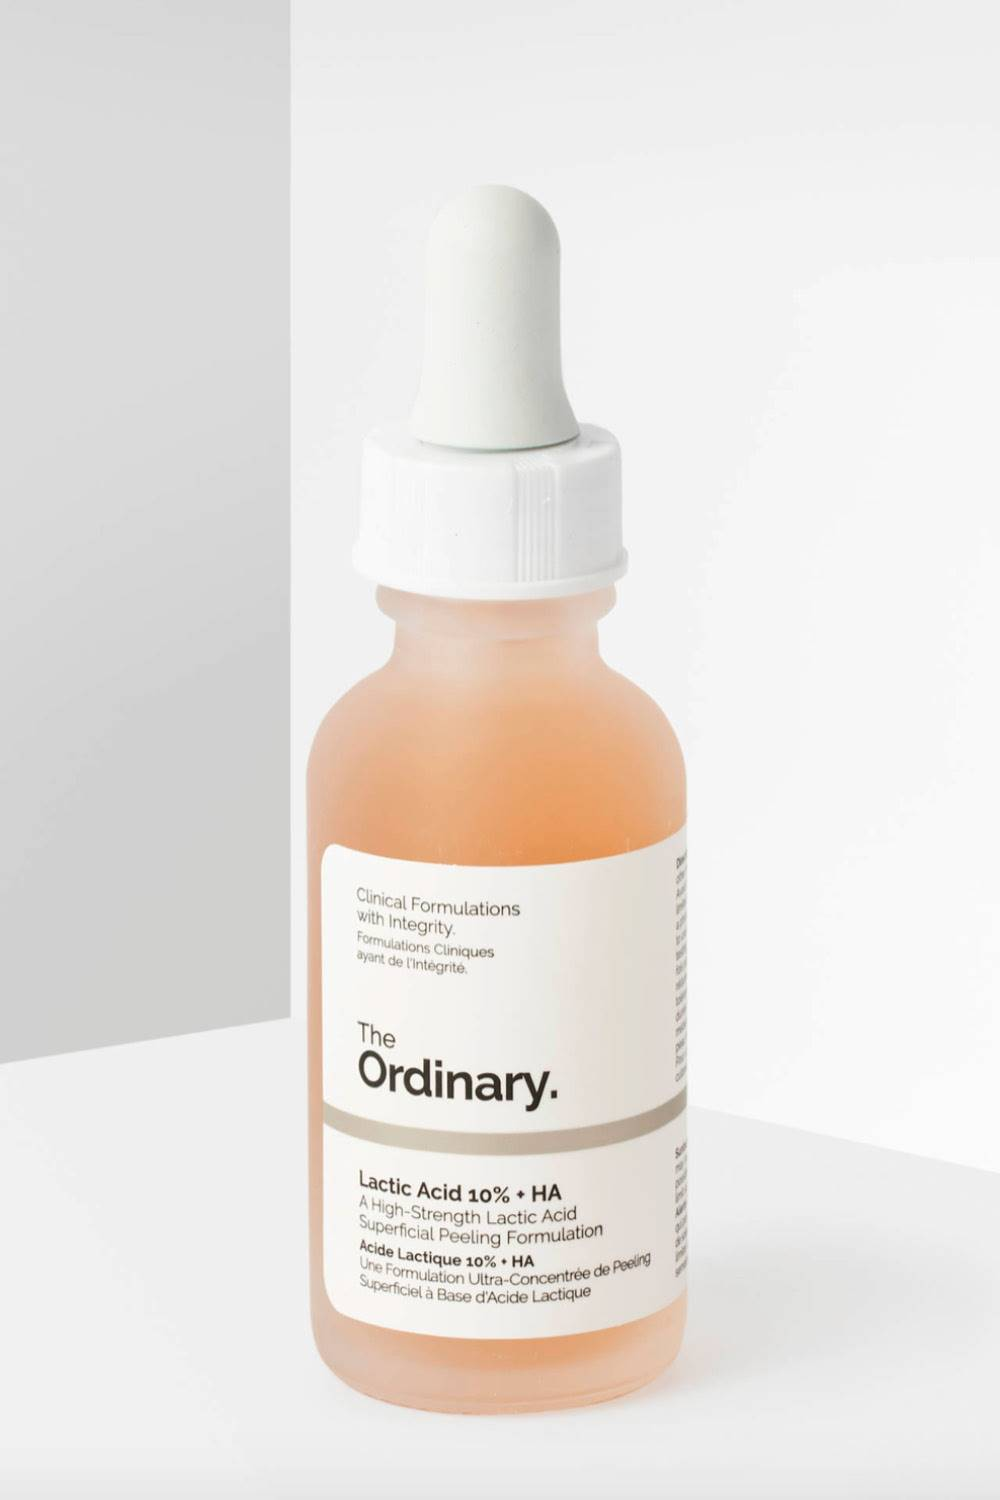 Peeling Enzimático The Ordinary 6,50€ 2021